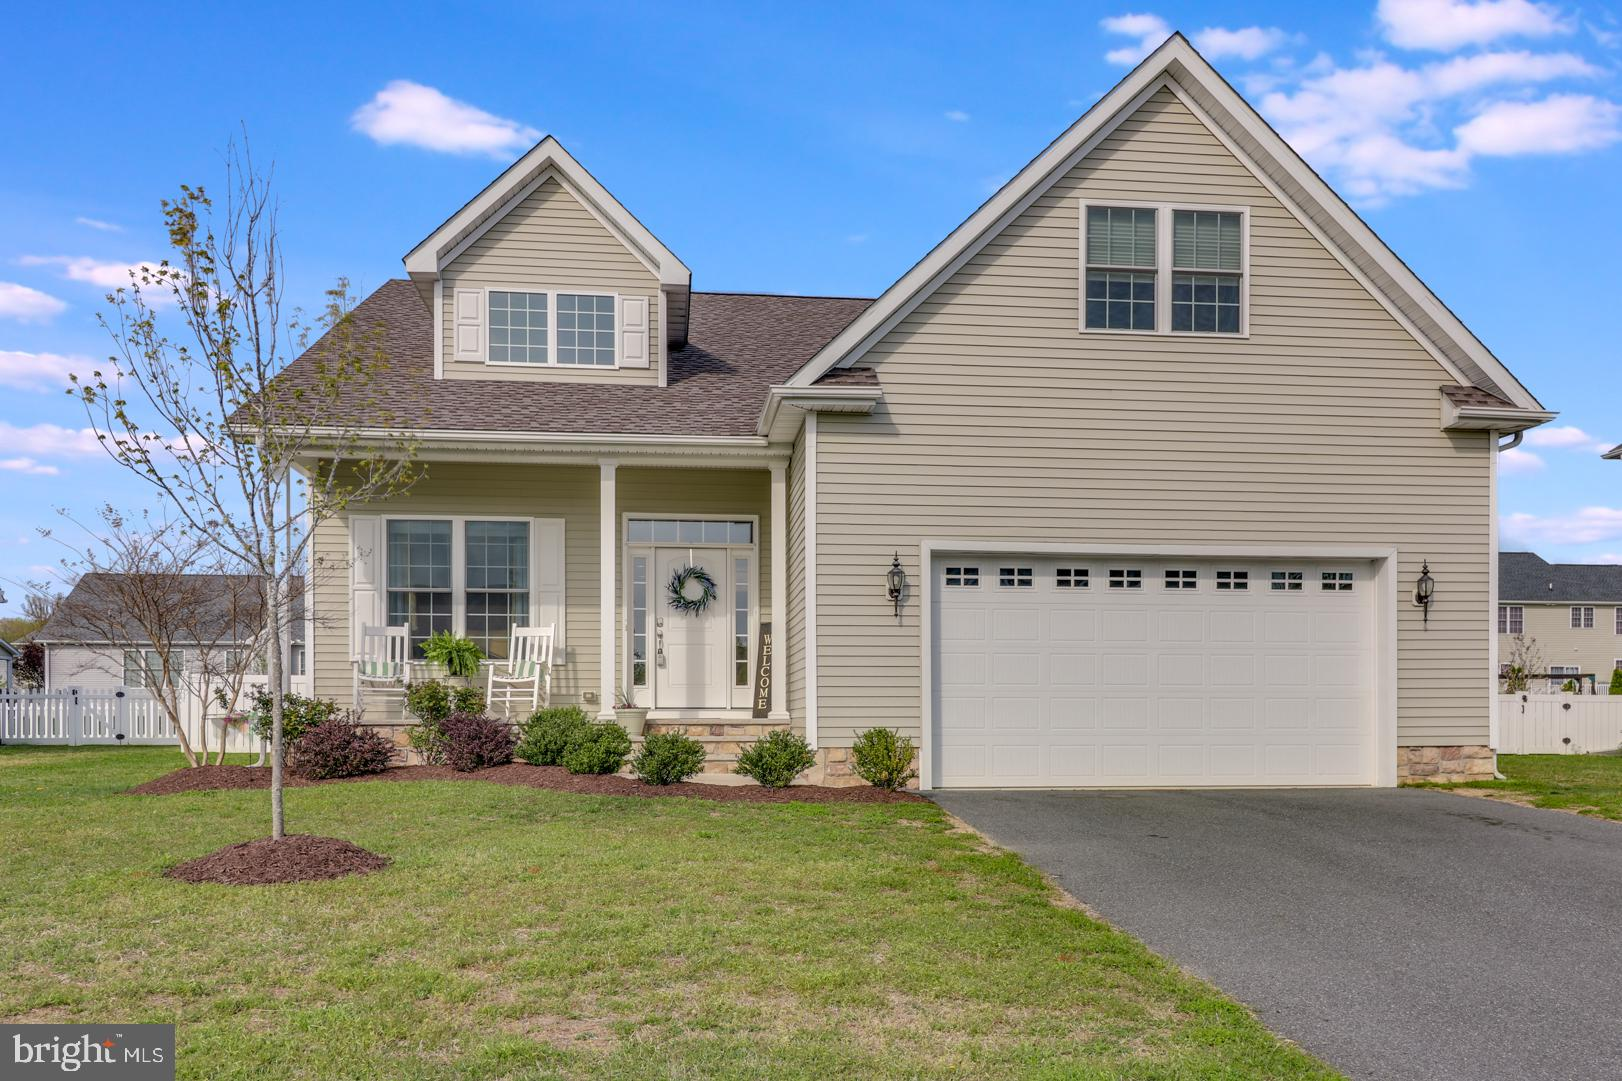 WOW!  MAIN FLOOR LIVING in an elegant C&M built custom home in the highly sought after Laureltowne development in the heart of the Caesar Rodney School District.  This 3-year young home is only available due to a work transfer and captures all the value of a two-story home, but with all the convenience of a rancher.  Check out the 3-D virtual tour and see for yourself~this one will go in a flash!  The master suite is sure to impress with a 5' x 11' walk-in closet and a spacious master bathroom complete with a linen closet, a spa tub, and a 5' tiled shower.  The home boasts an abundance of upgrades along with a cathedral ceiling in the great room and you'll be pleasantly surprised to find large walk-in closets in nearly every room in the house.  The main level features a contemporary open-concept where entertaining is sure to be a breeze.  The home flows nicely to the outdoor living space, so whether a relaxing evening for two or a crowd of 20, it'll be easy to enjoy the fire pit on the nice paver patio with an abundance of peace and quiet from the recently constructed privacy fence.  When it's time to turn in for the evening, your guests will have plenty of space to call their own with three large bedrooms on the second level and a bonus room that can take on any role...think office, library, craft room, play area, man-cave, etc.  There is no shortage of living space in this home, but for anyone longing for more, there is a full 9' basement just waiting to be finished into anything you can imagine.~ Don't miss this awesome opportunity...get it on your tour today!